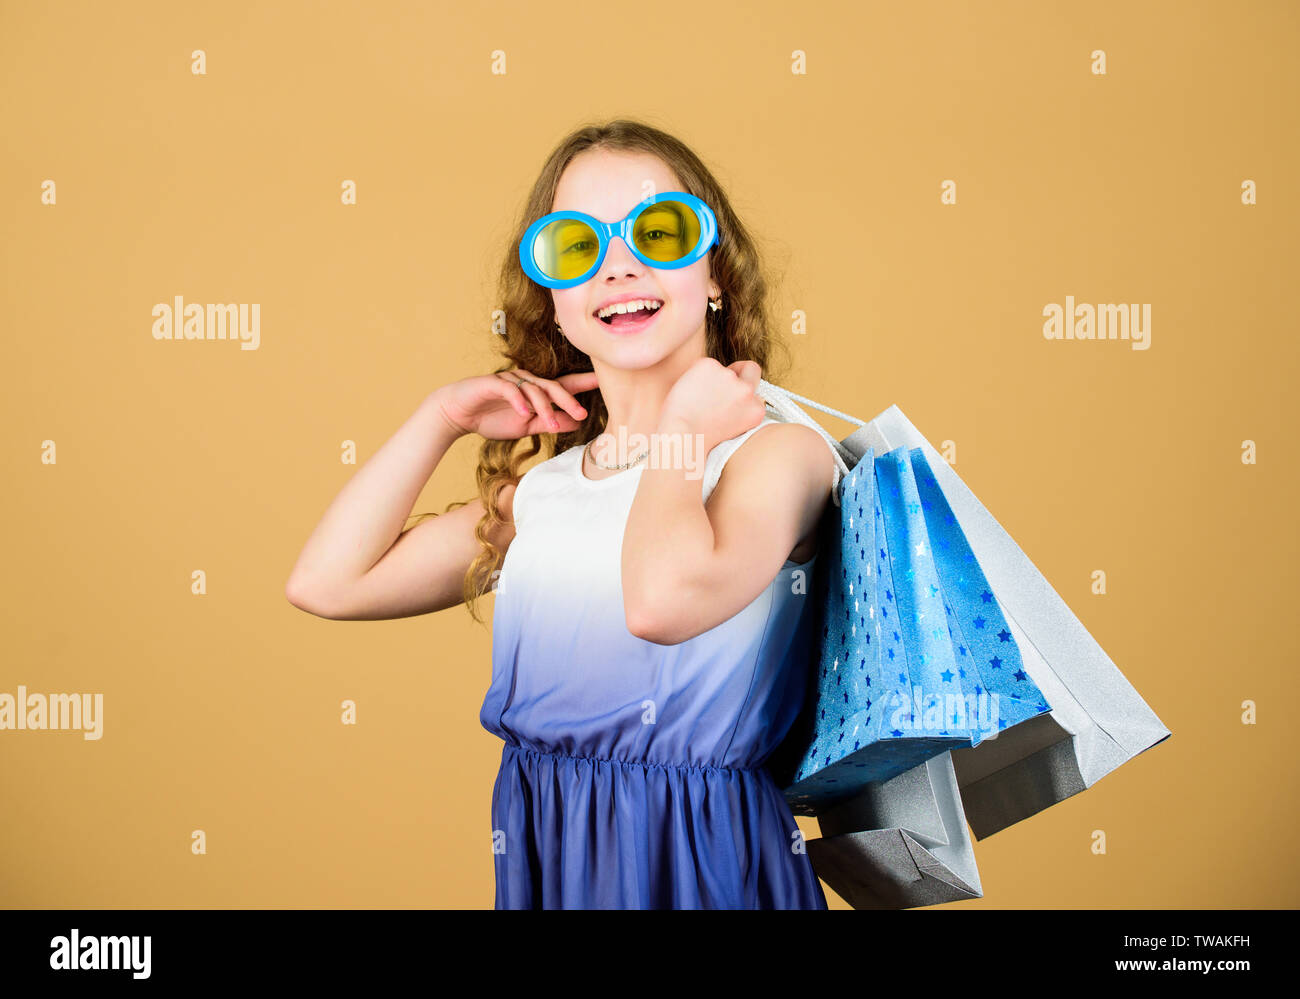 Nice purchase. happy shopping girl with bags. summer sales. Small girl fashion. cyber Monday. Present and gifts buy. black Friday discount. happy birthday holiday. Beauty. Own business. - Stock Image